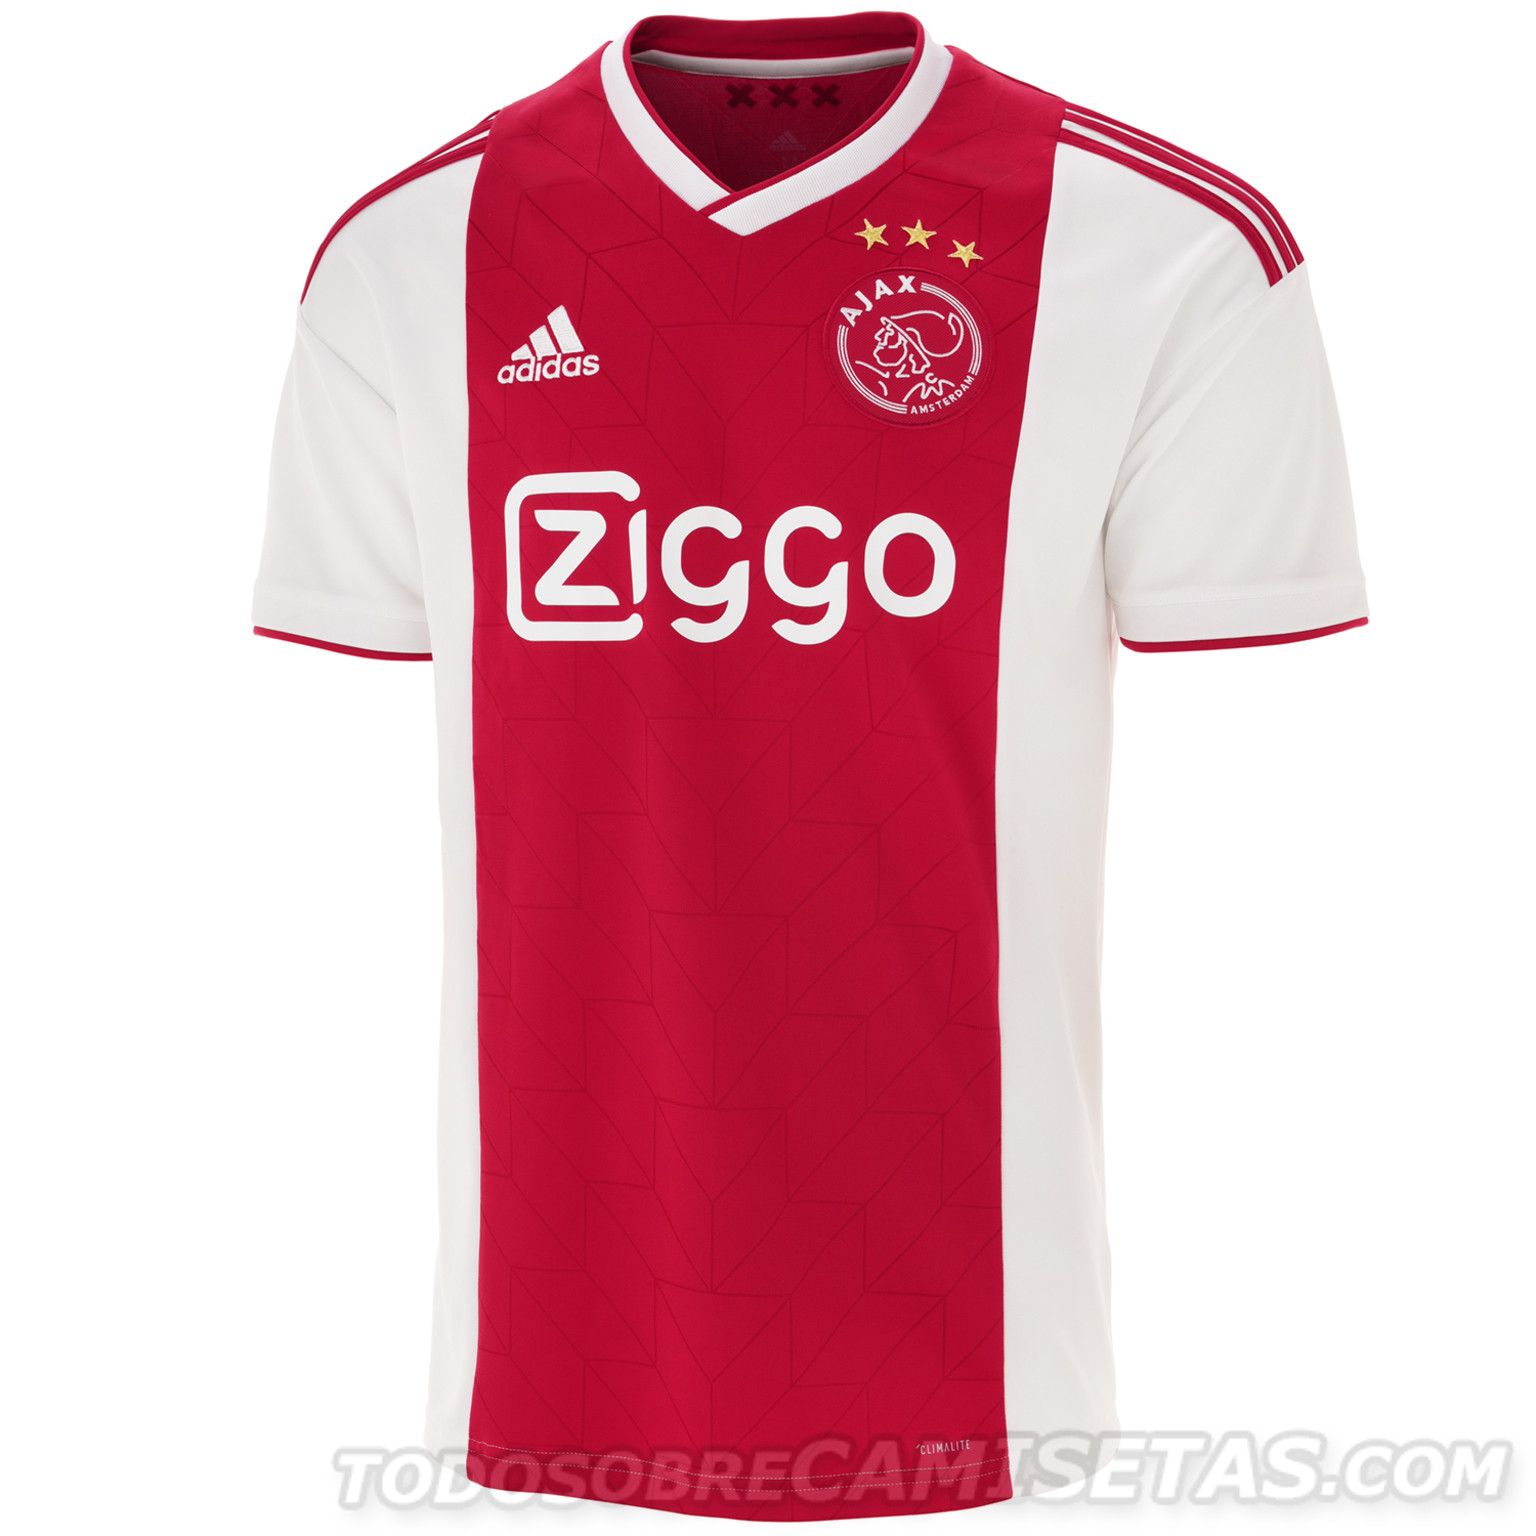 dfdf5c5f5c1 Ajax 2018-19 adidas Home Kit. Ajax 2018-19 adidas Home Kit International  Teams